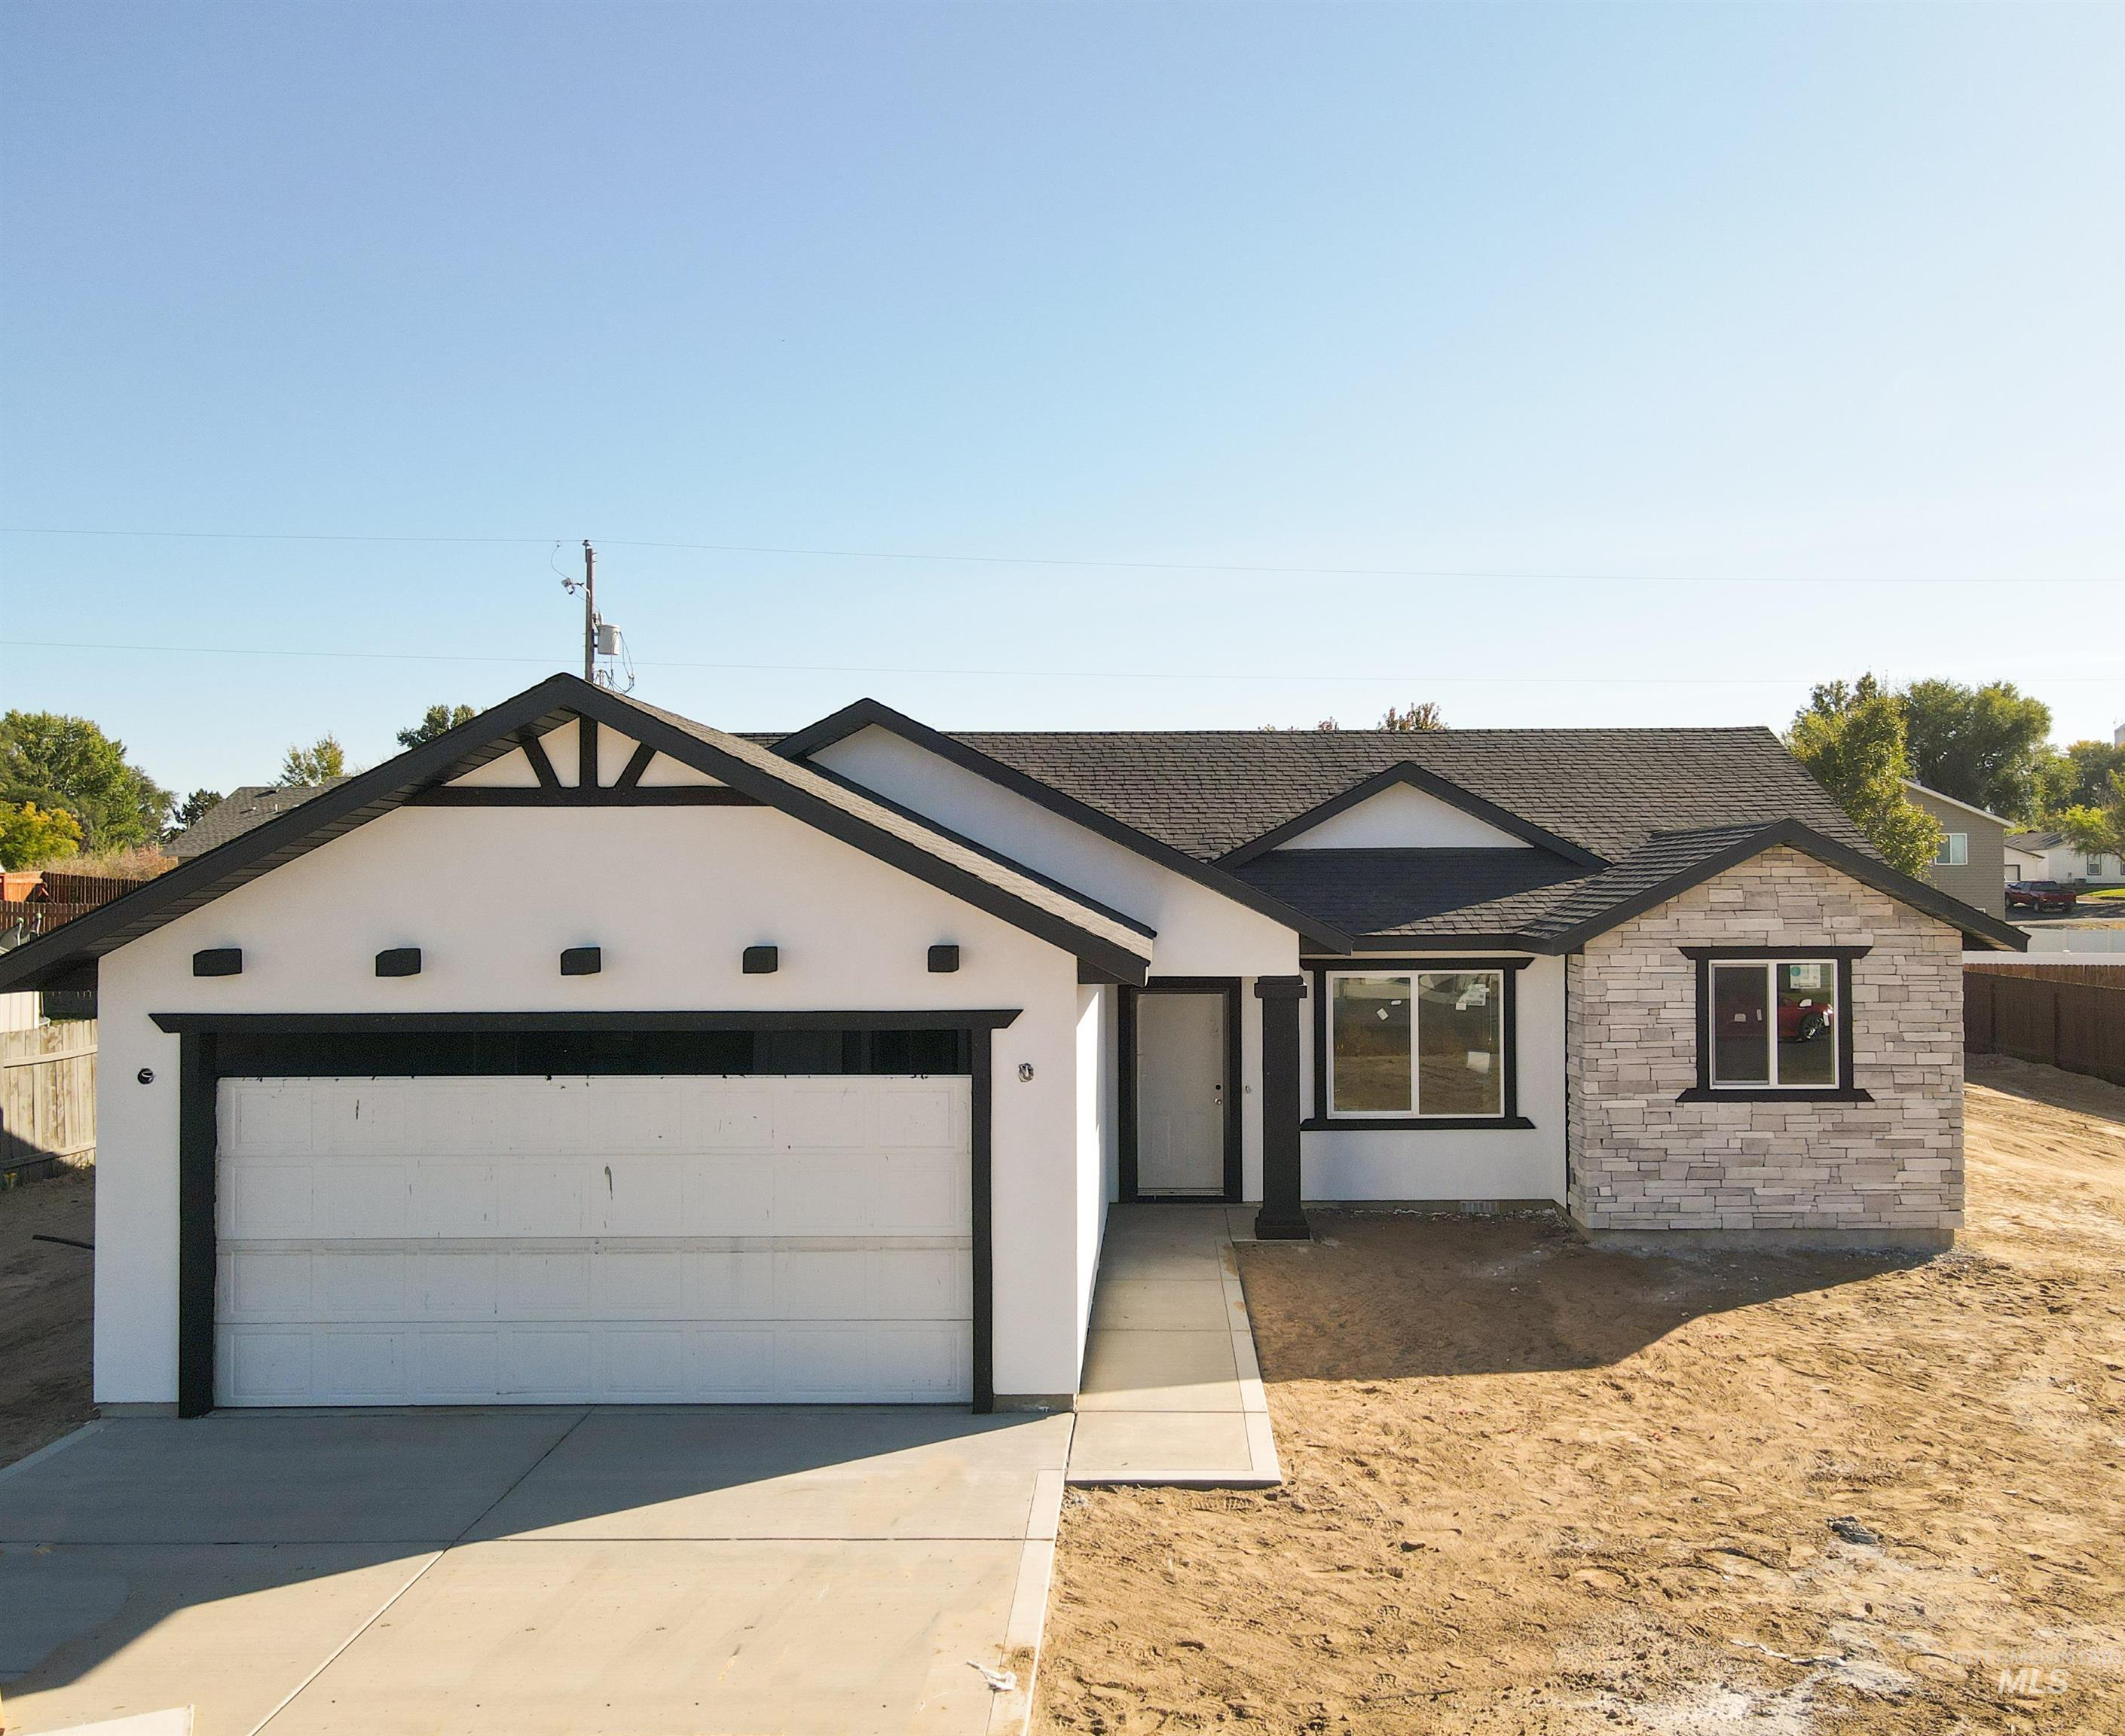 339 7th Ave W, Wendell, ID 83355